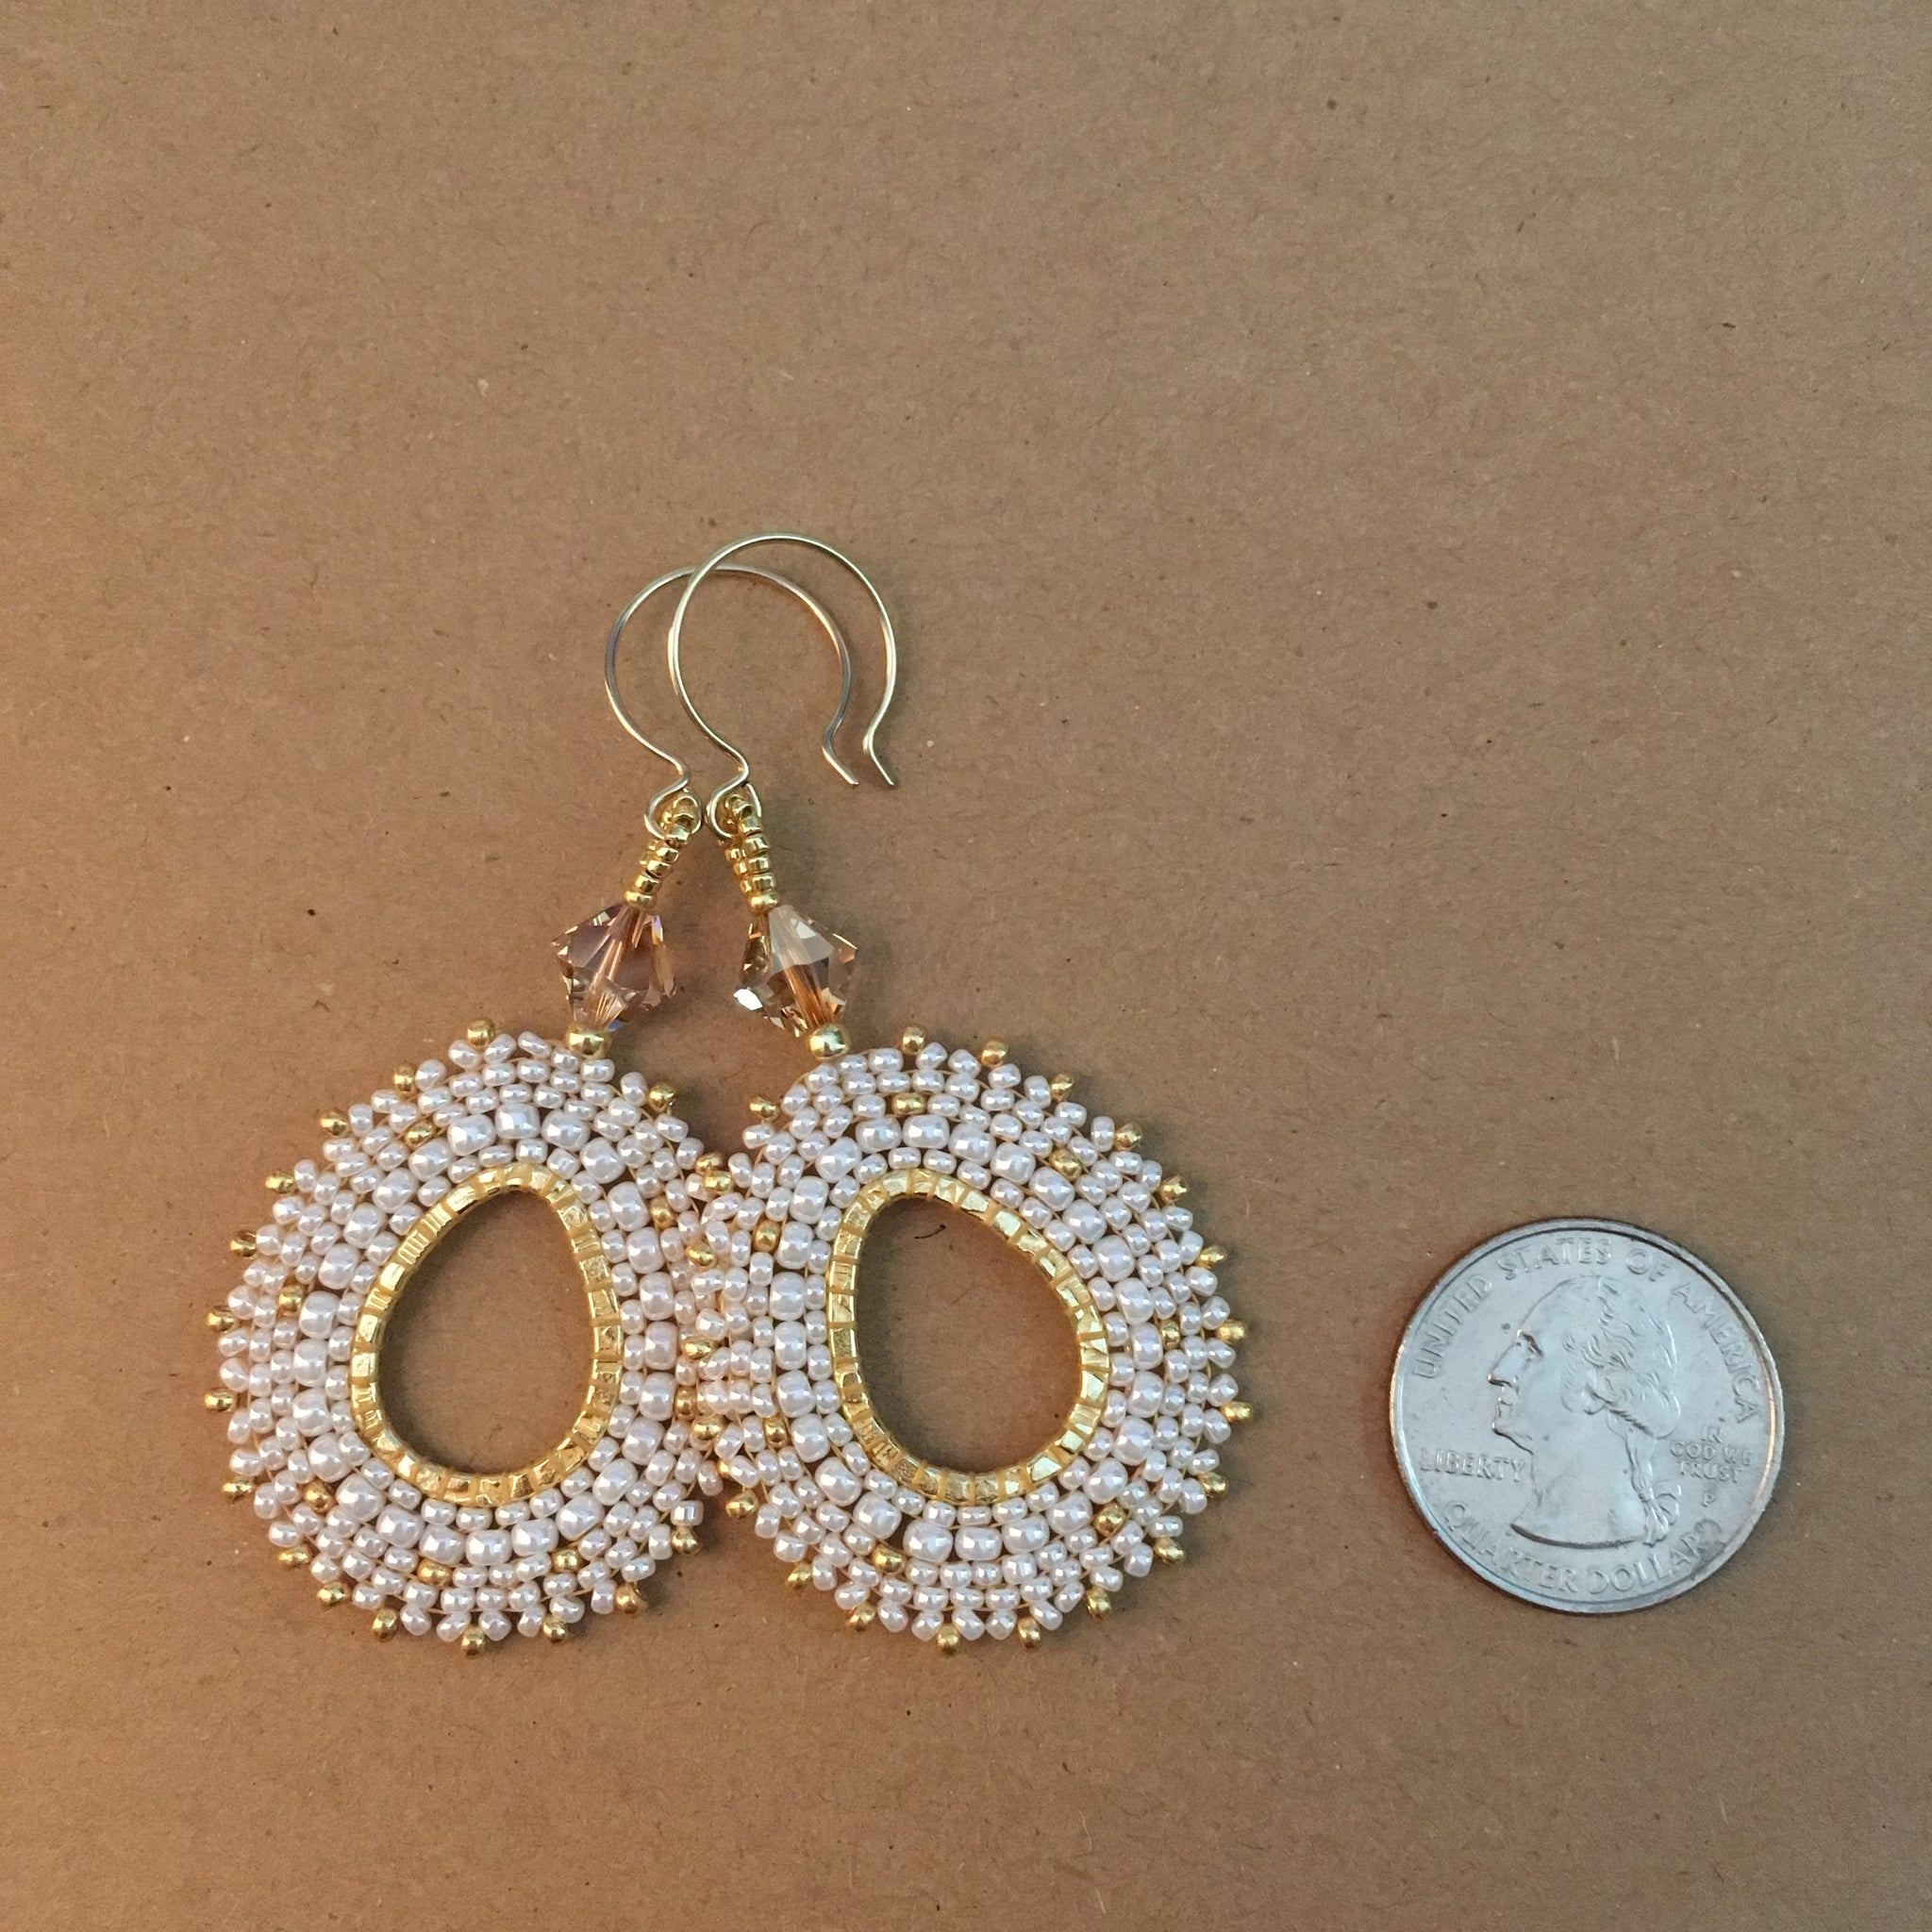 Pearly White and Gold Oval Hoop Earrings